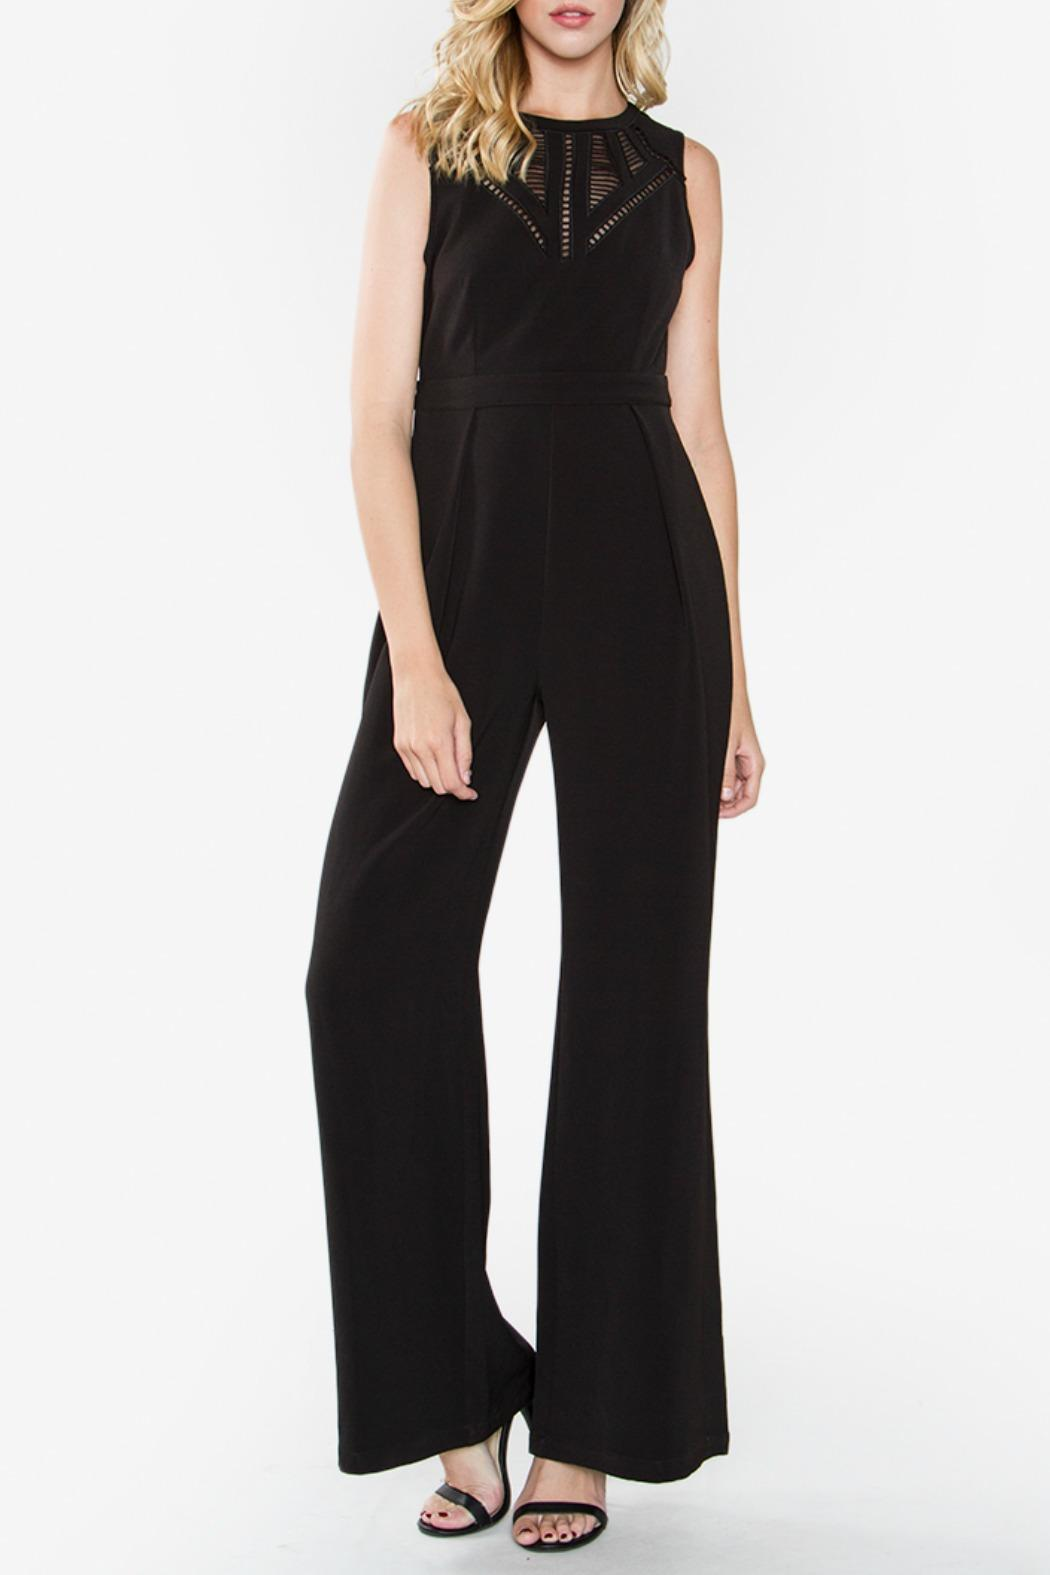 660d22c92ccc Sugar Lips Sleeveless Wide Legged Jumpsuit from California by ...